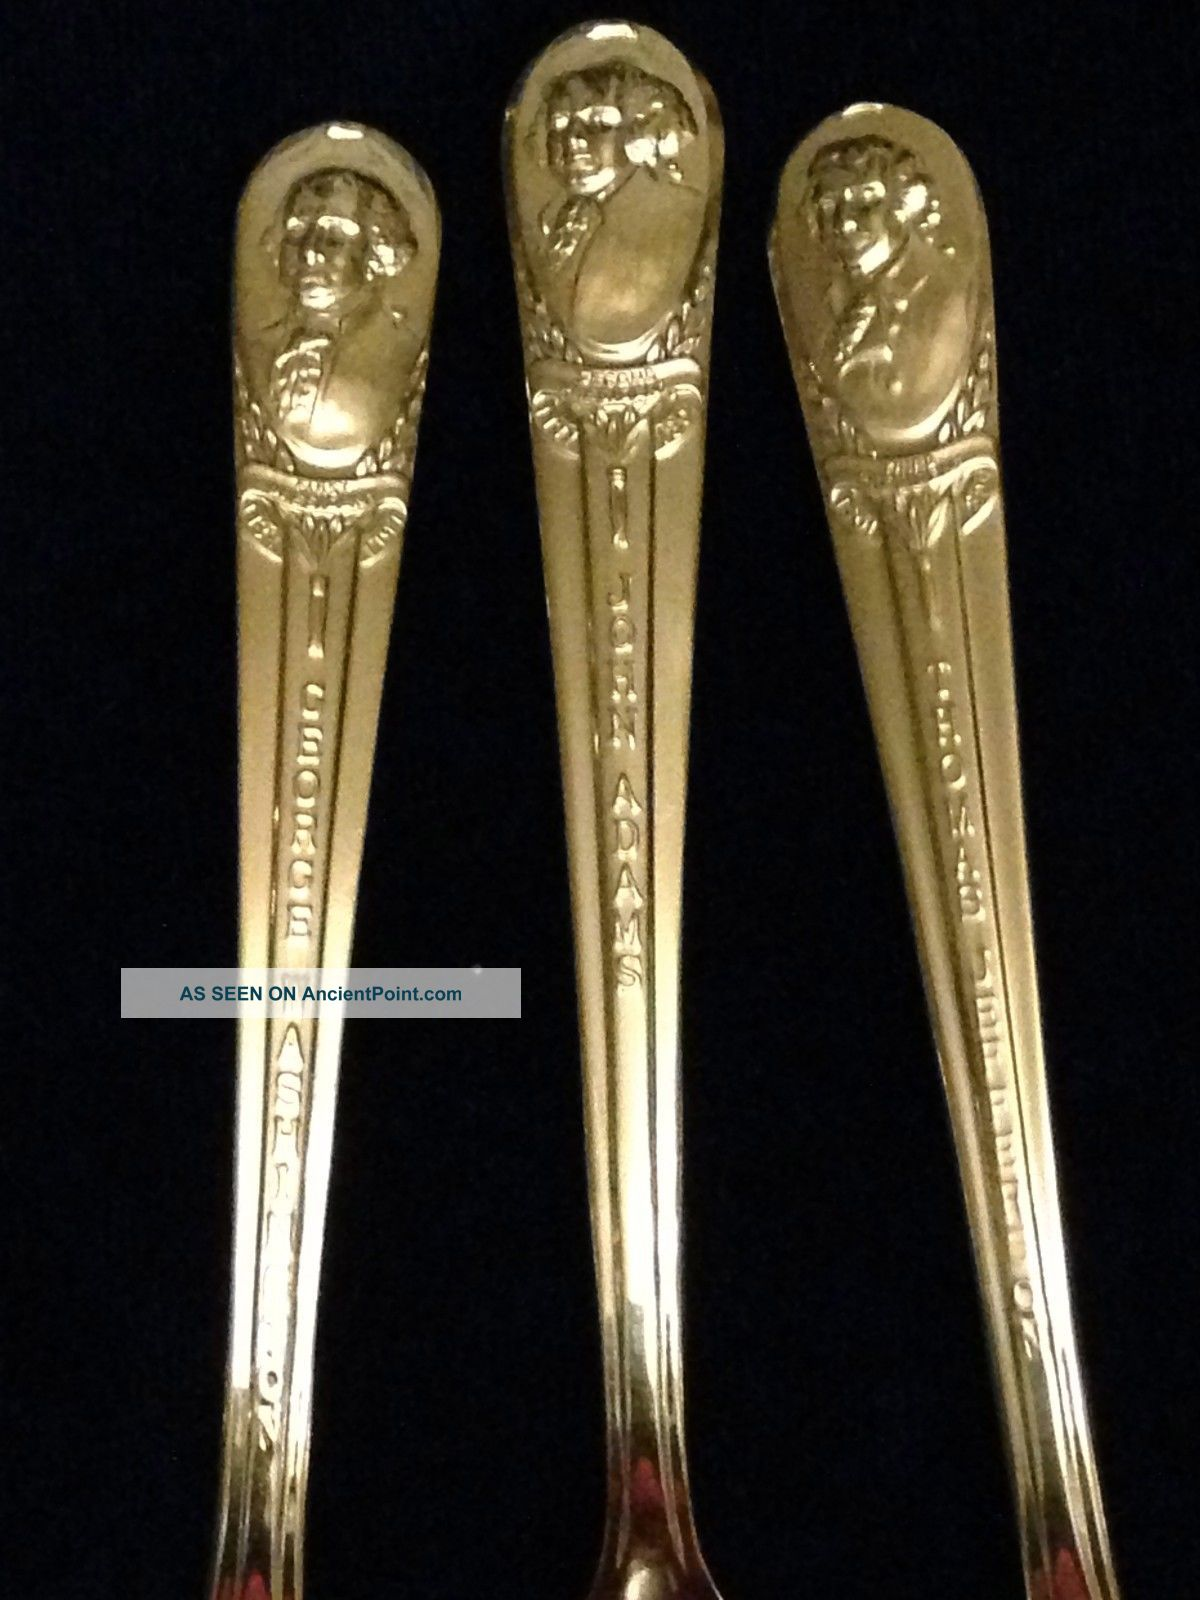 Set Of 3 Wm.  Rogers Mfg Co.  Silverplated President Commemorative Souvenir Spoons Souvenir Spoons photo